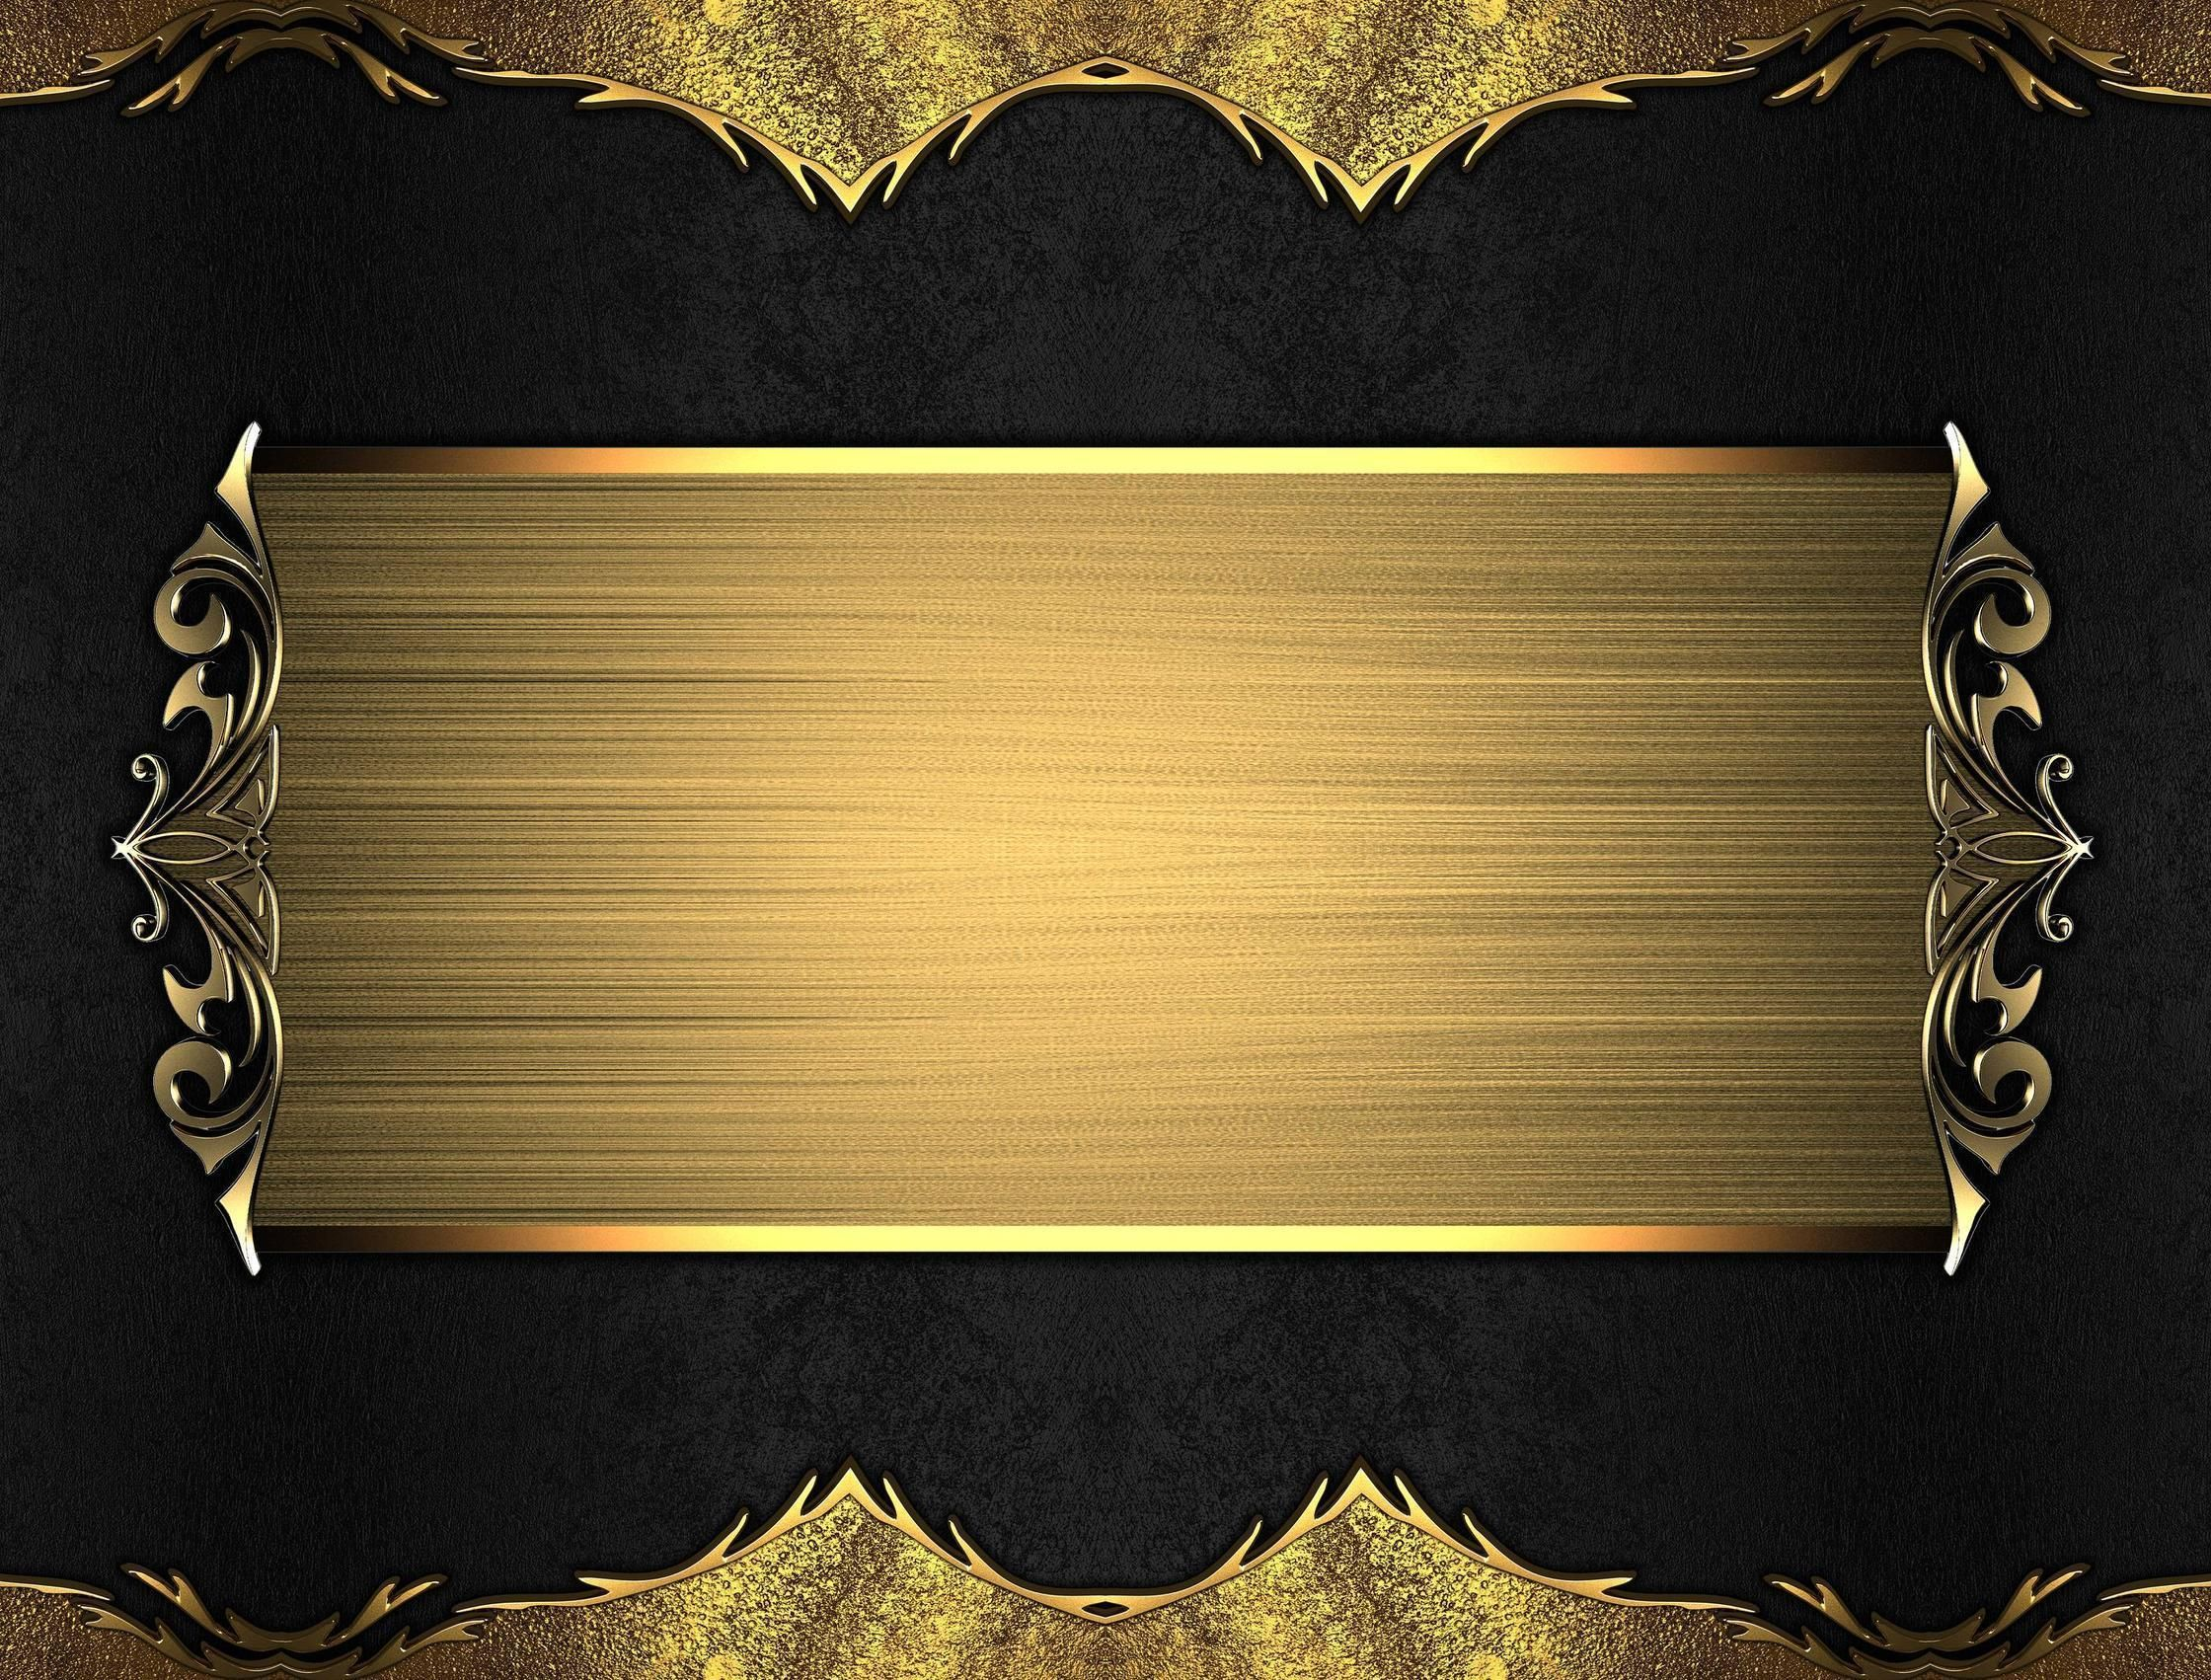 Wallpapers For > Gold And Black Backgrounds